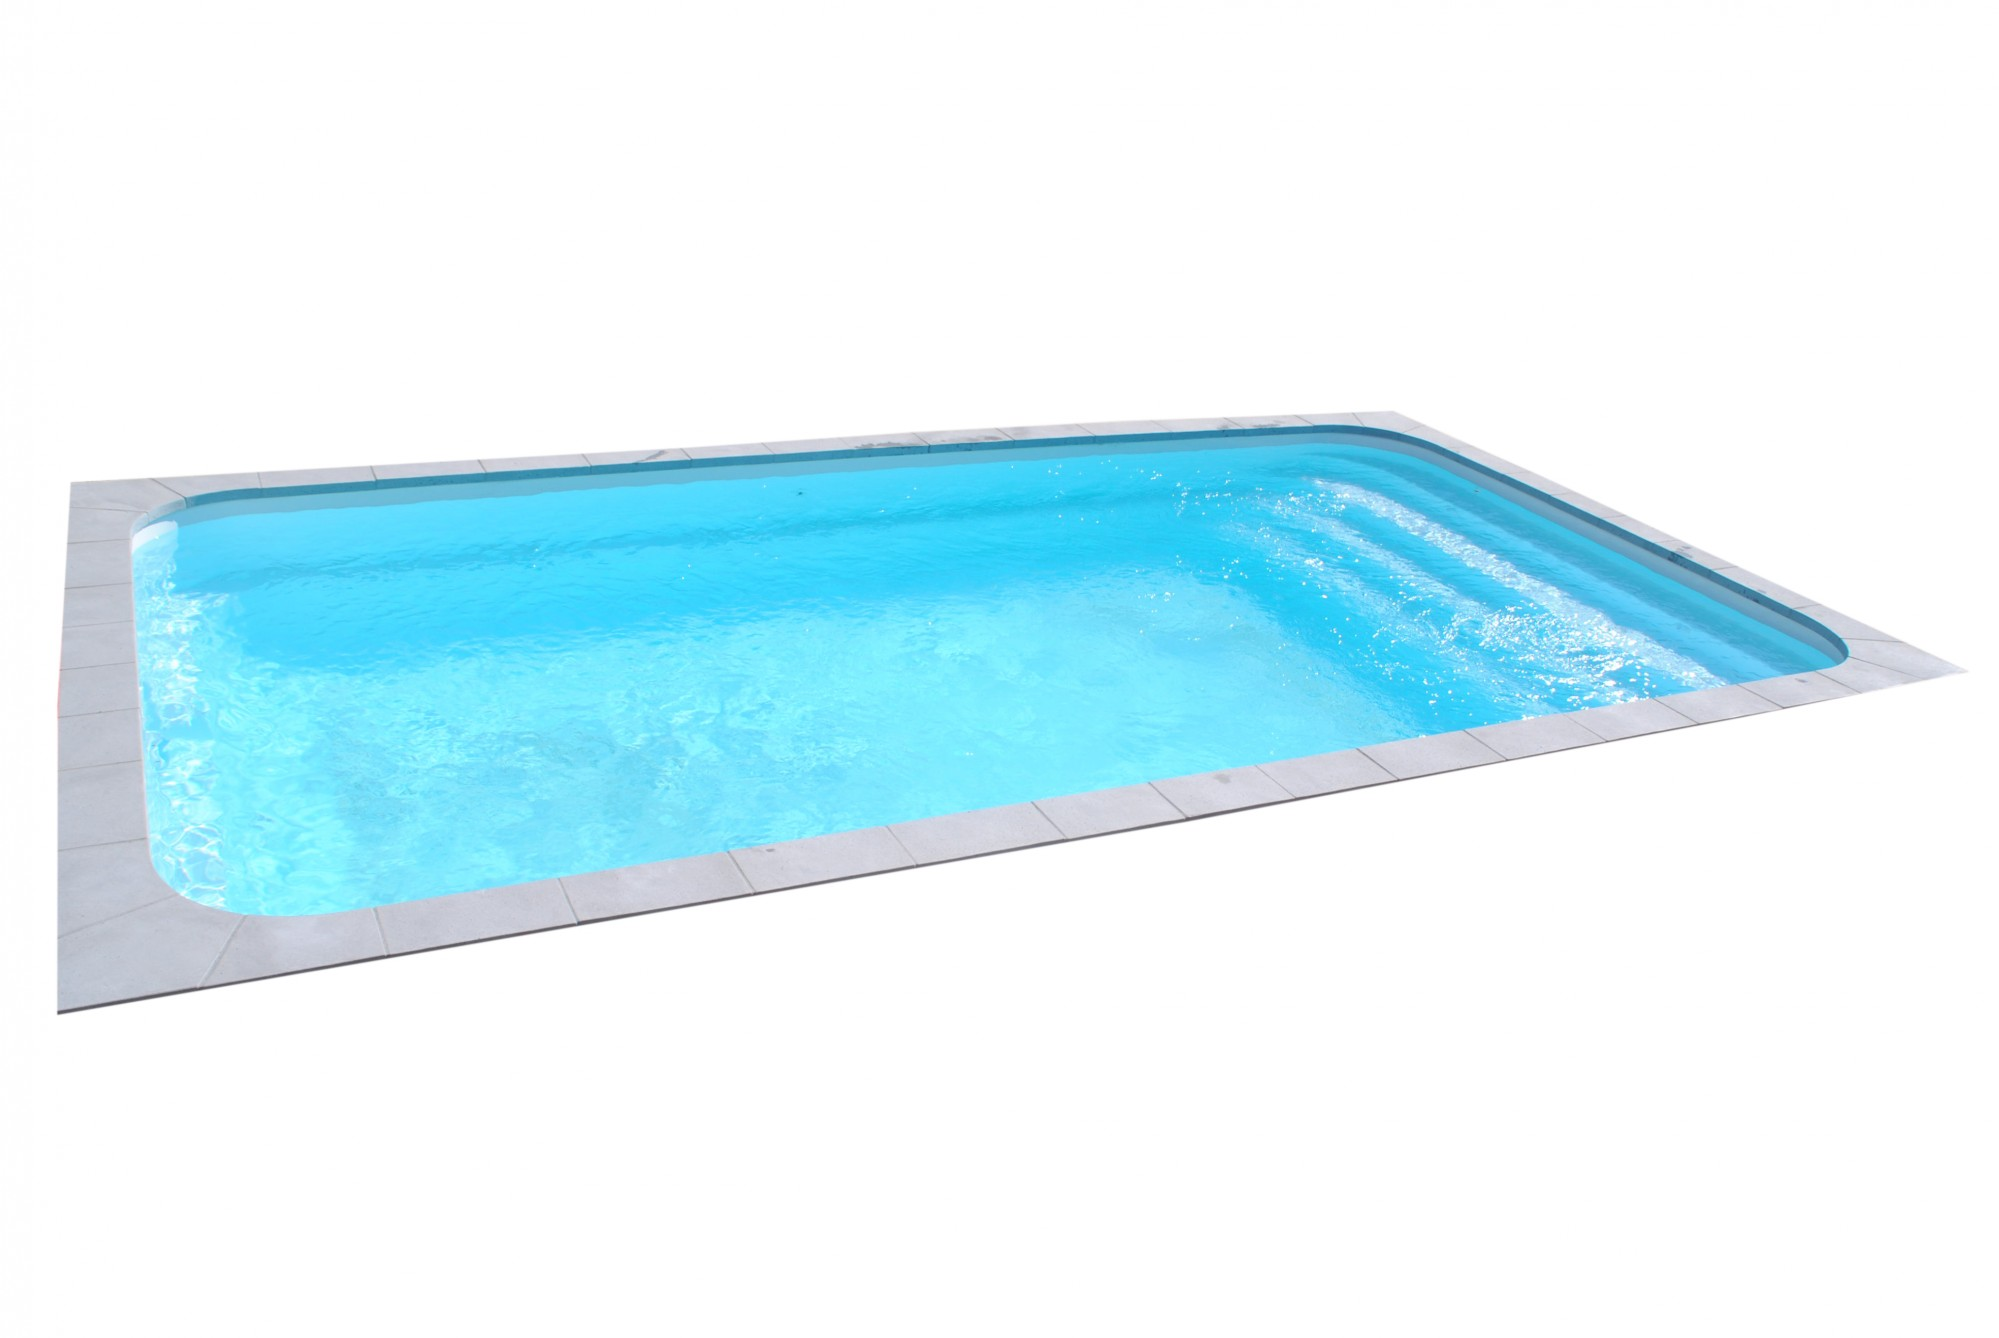 Vente et pose d 39 une piscine enterr e moderne 8x4 for Acheter piscine enterree